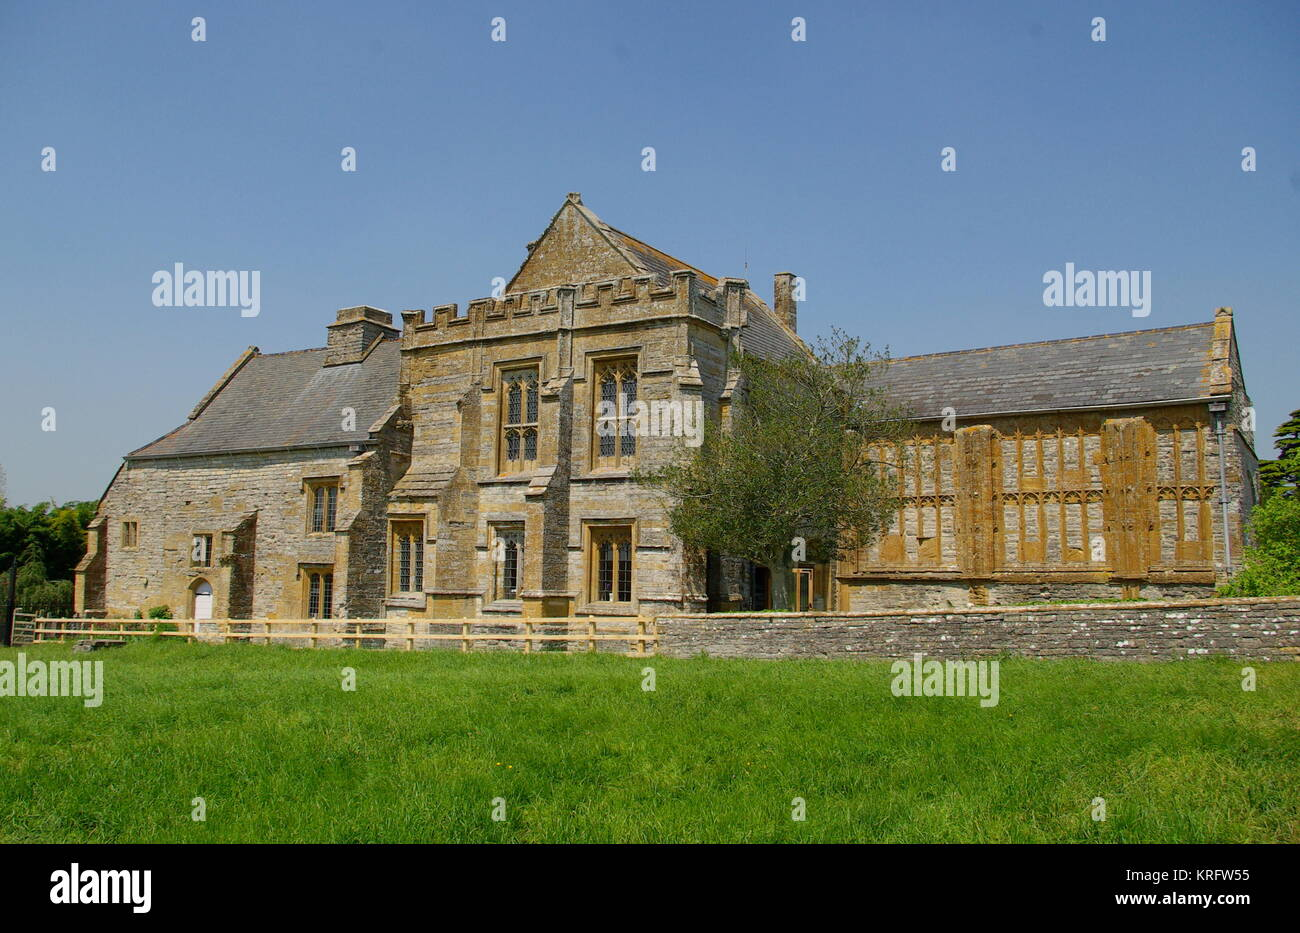 View of Muchelney Abbey, a Grade I listed building in the village of Muchelney, Somerset.      Date: 2014 - Stock Image